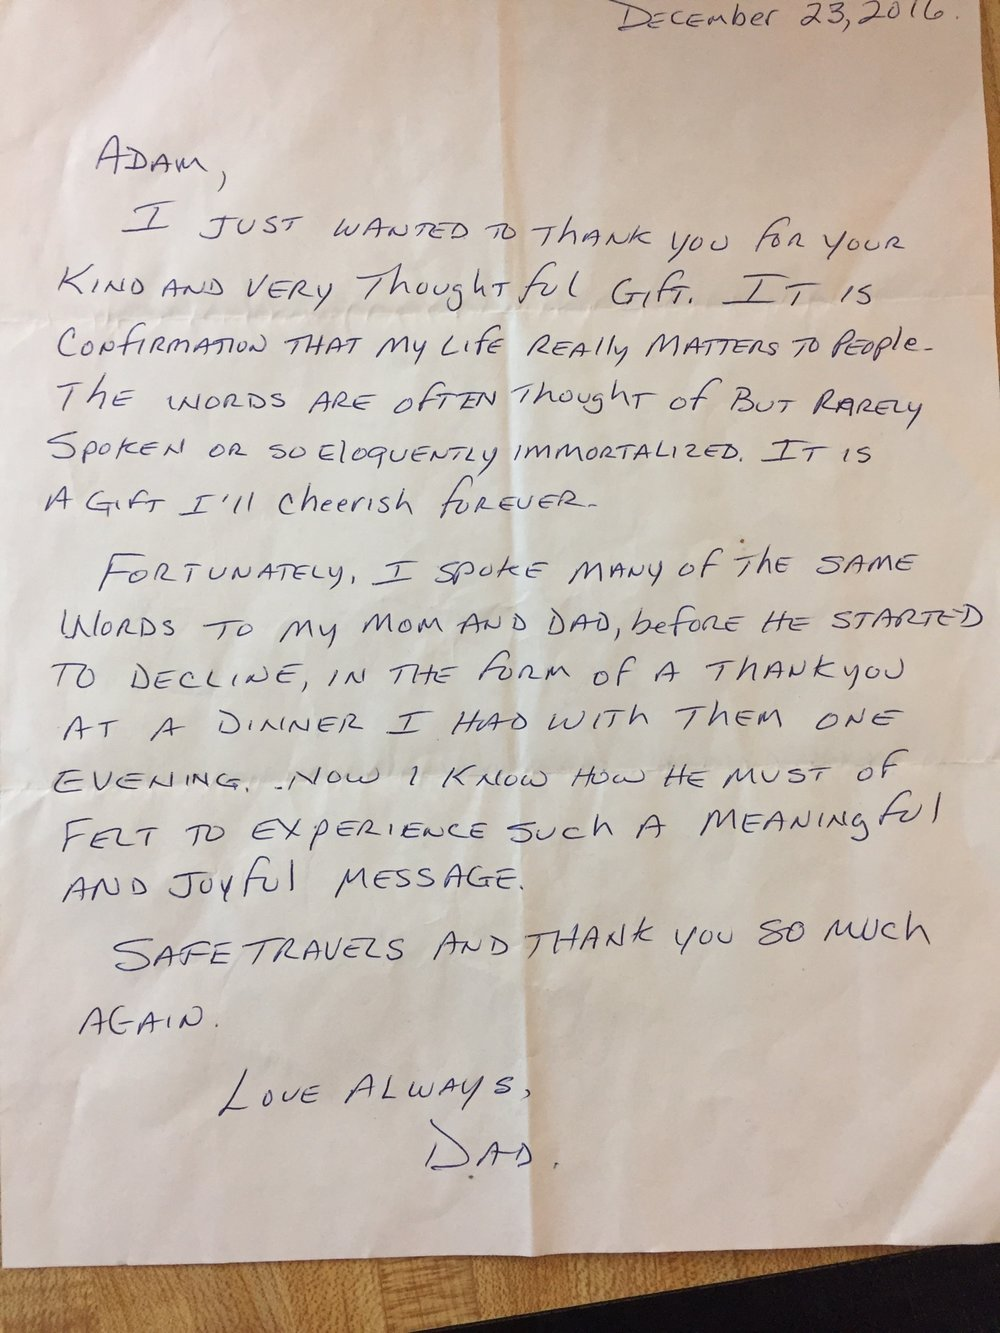 Sid's note to his son, Adam, expressing his gratitude for his custom Feature